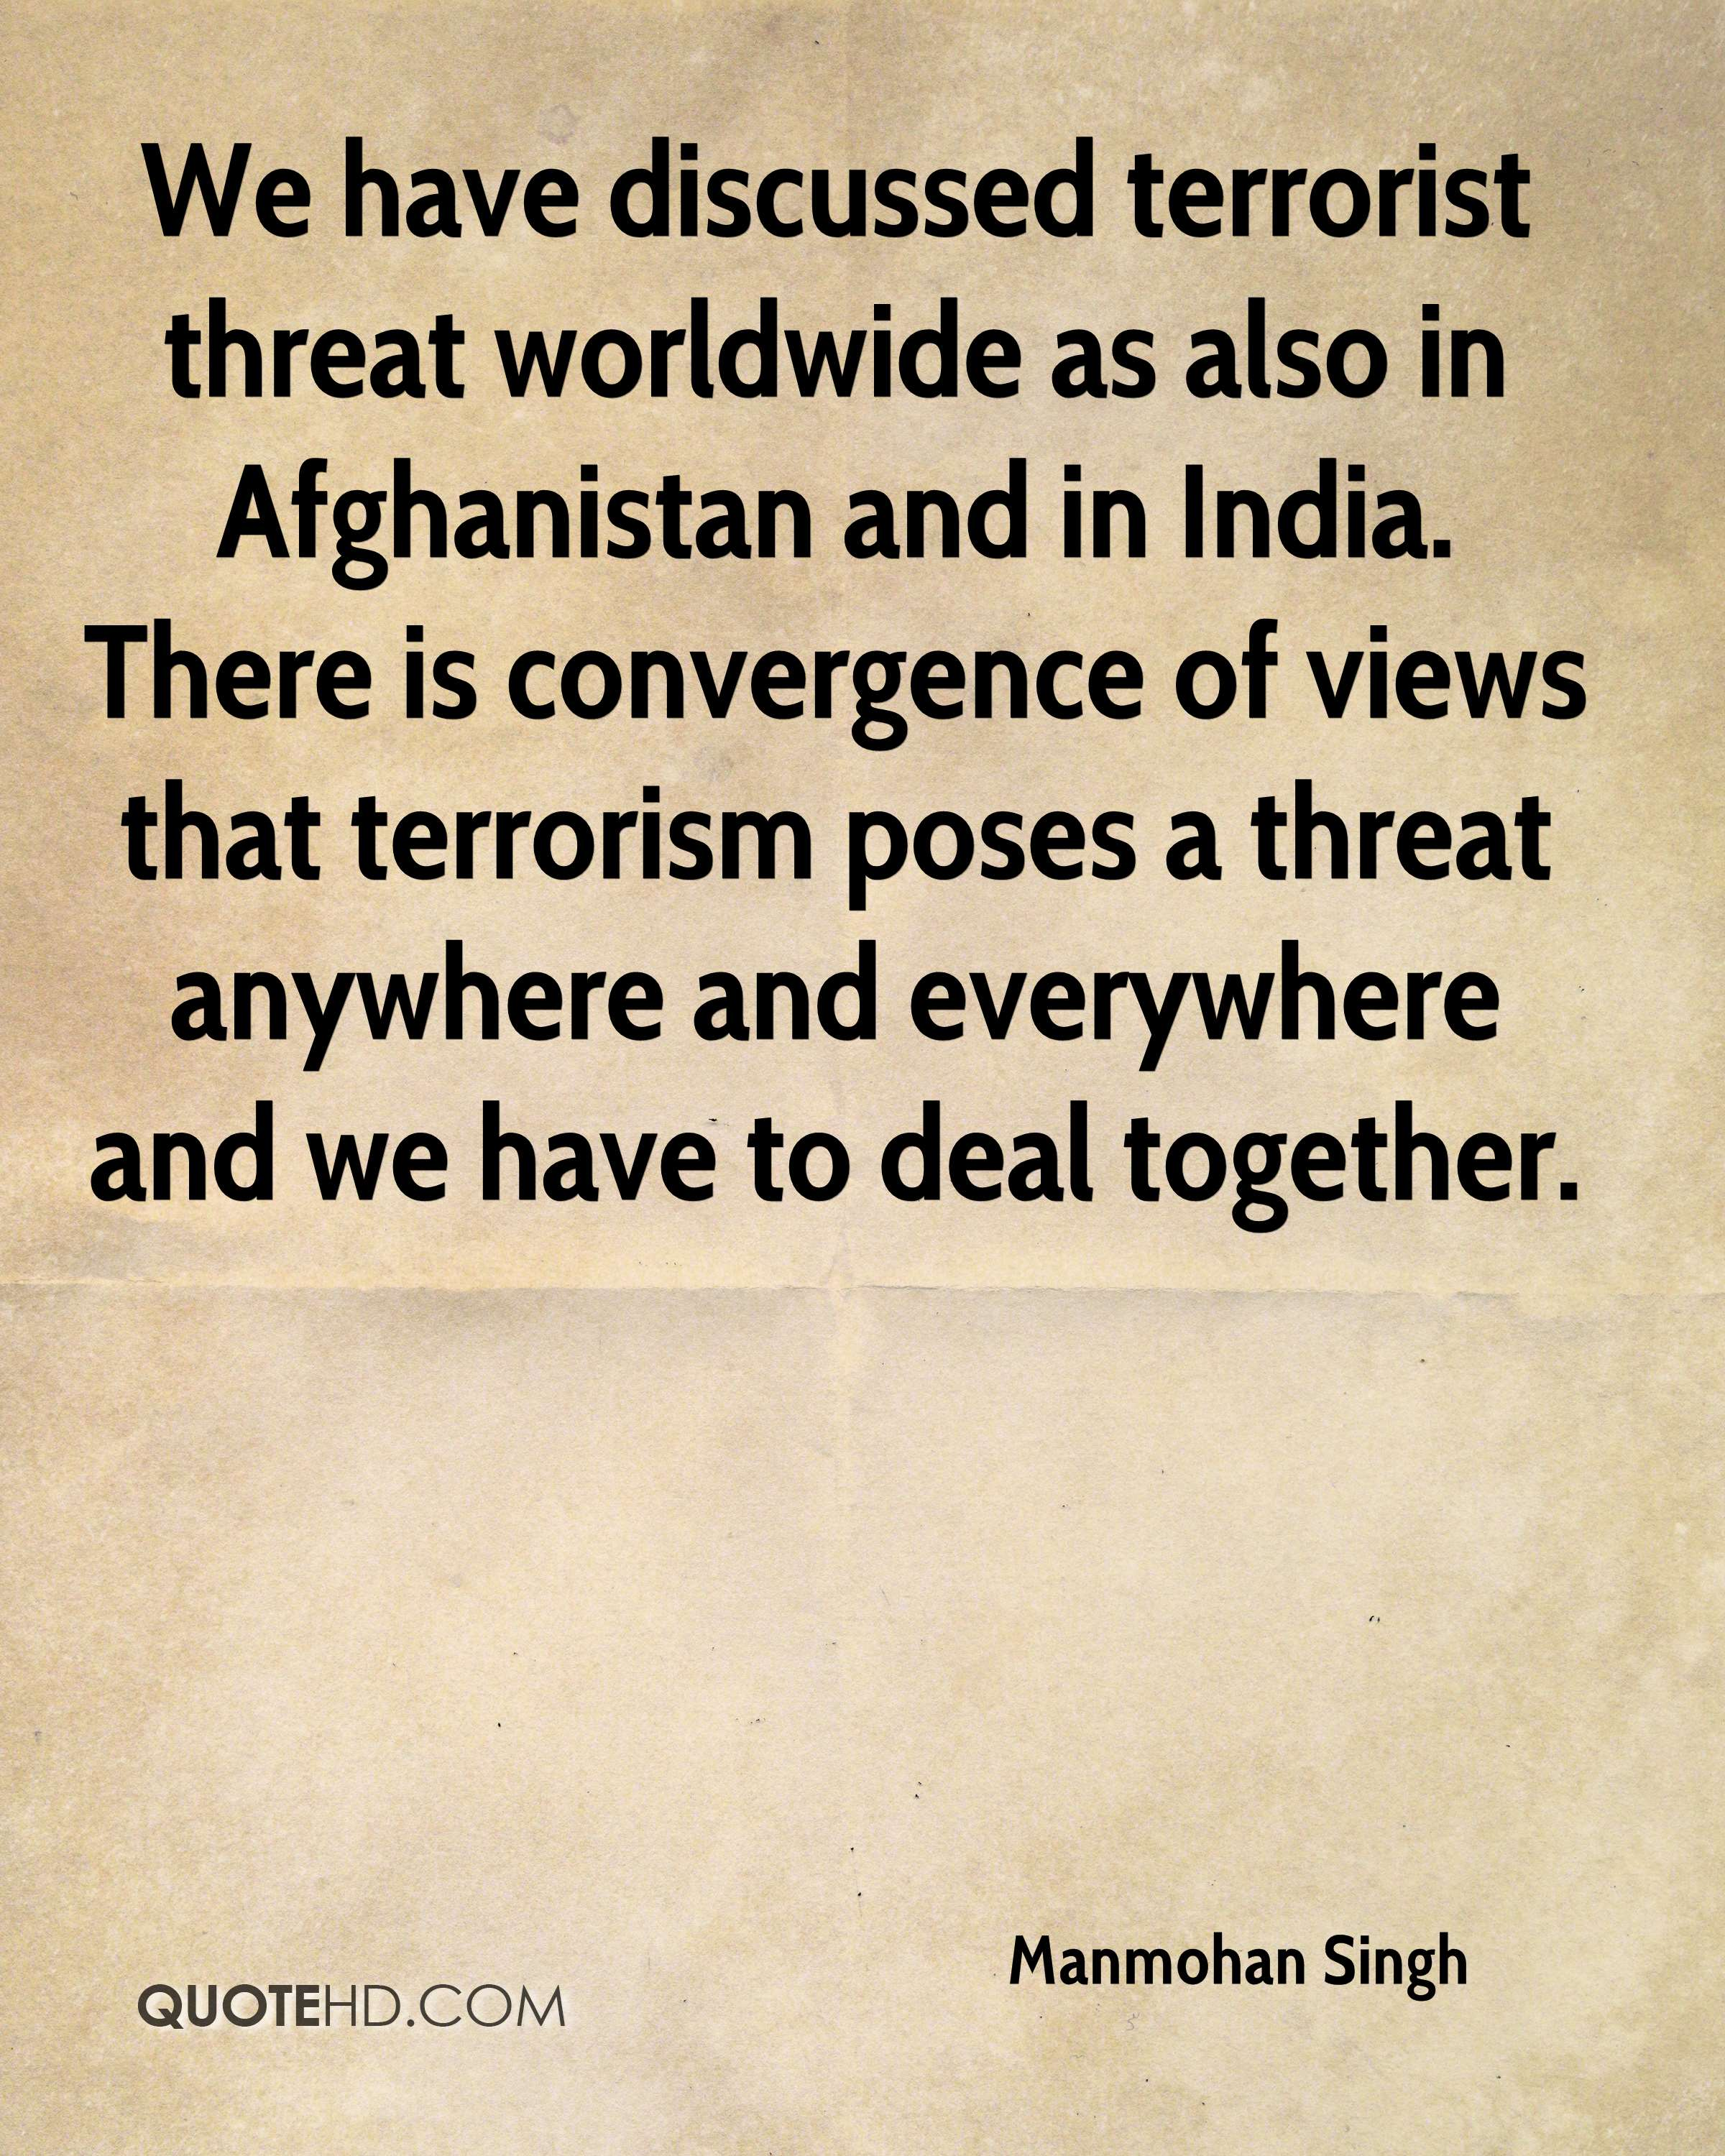 We have discussed terrorist threat worldwide as also in Afghanistan and in India. There is convergence of views that terrorism poses a threat anywhere and everywhere and we have to deal together.